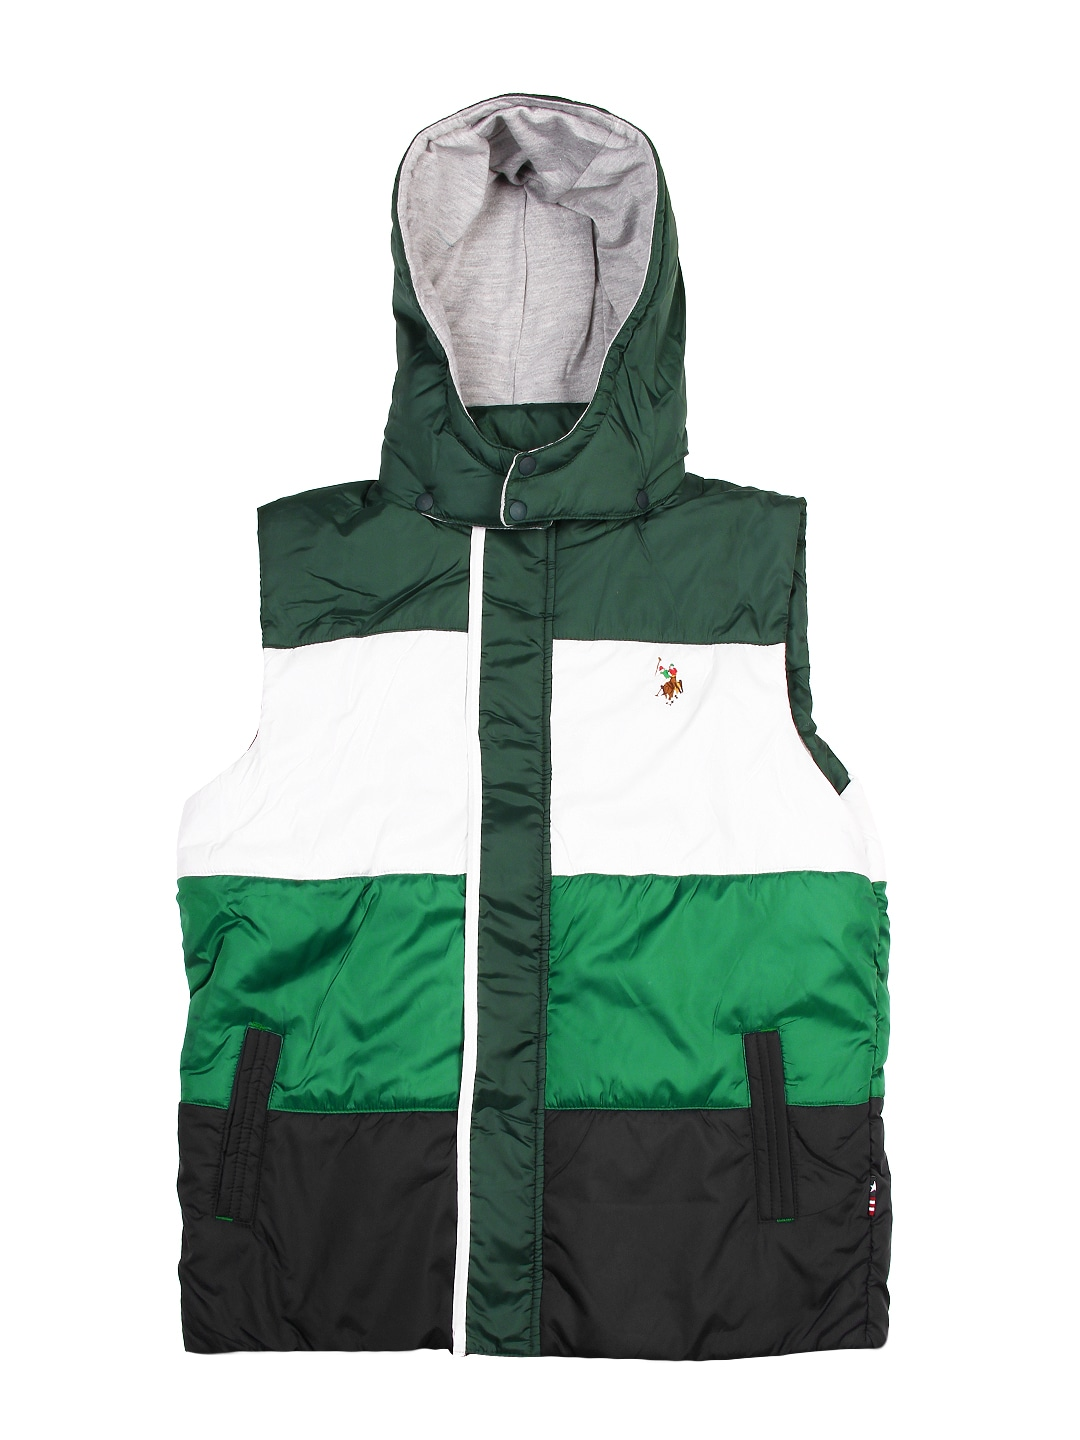 U.S. Polo Assn. Kids Boys Green & White Jacket